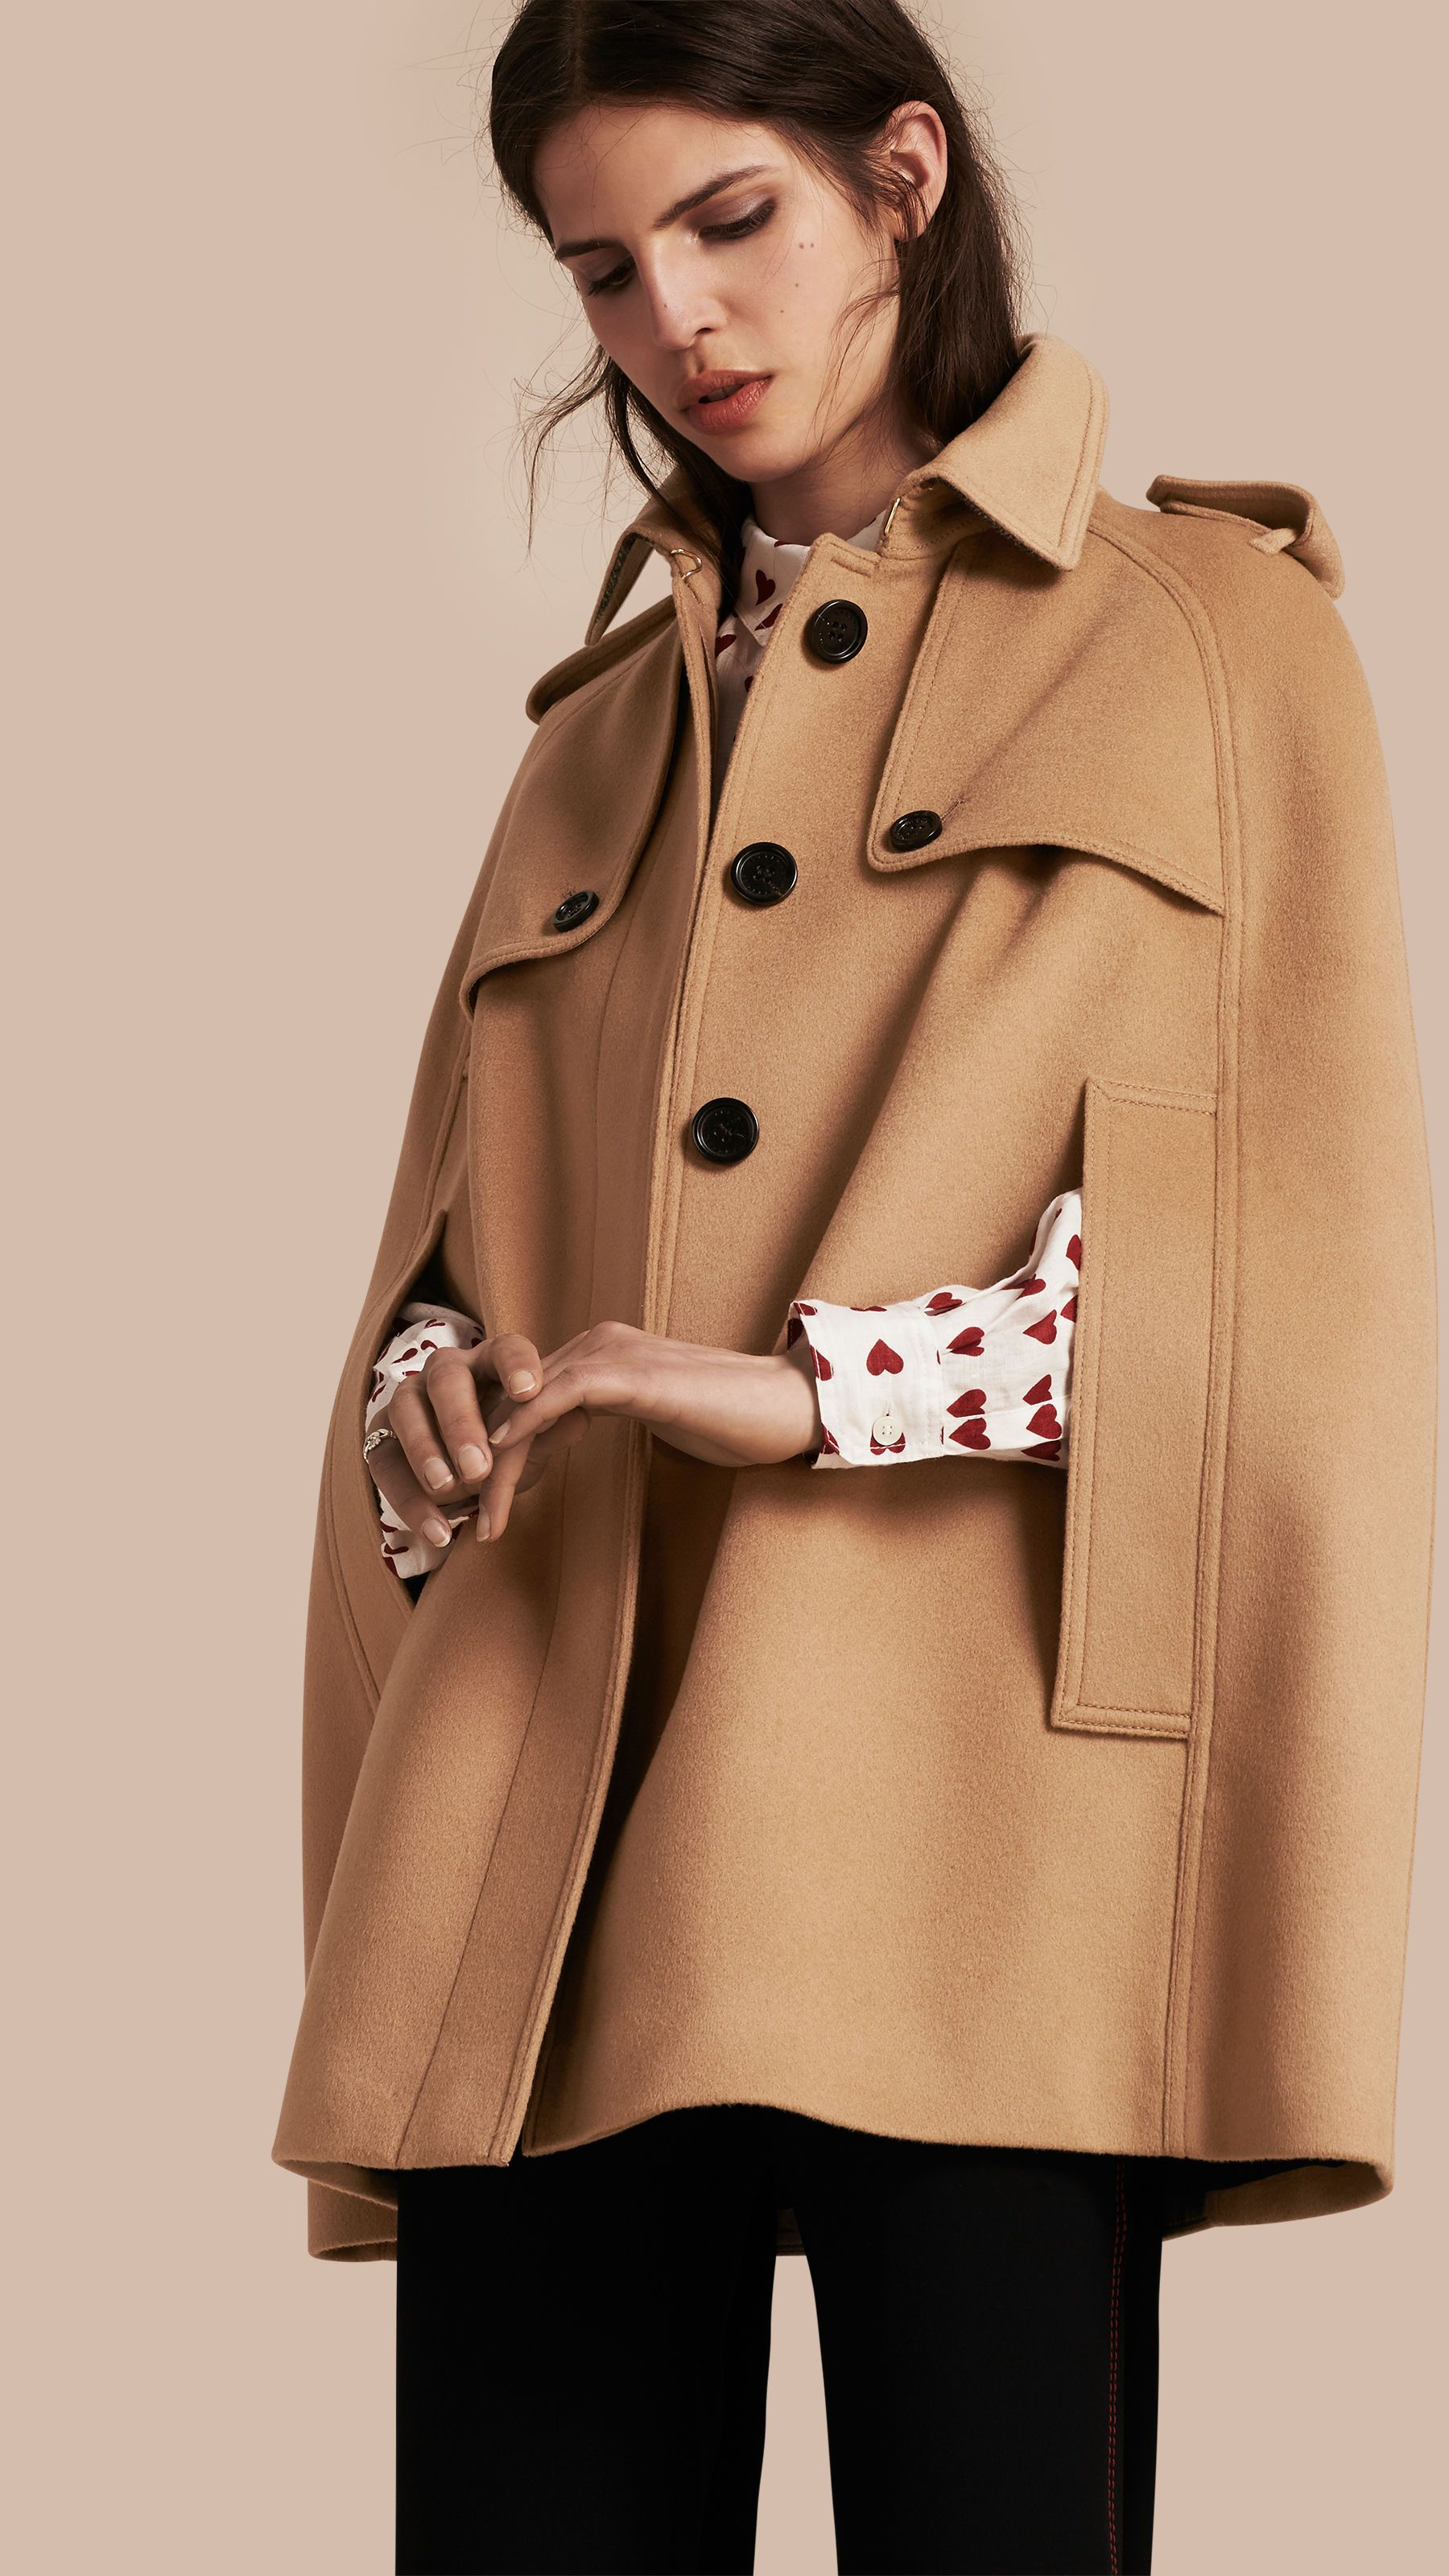 Wool Cashmere Blend Trench Cape Camel   Burberry   Fashion Finds ... 1df0e643fe8